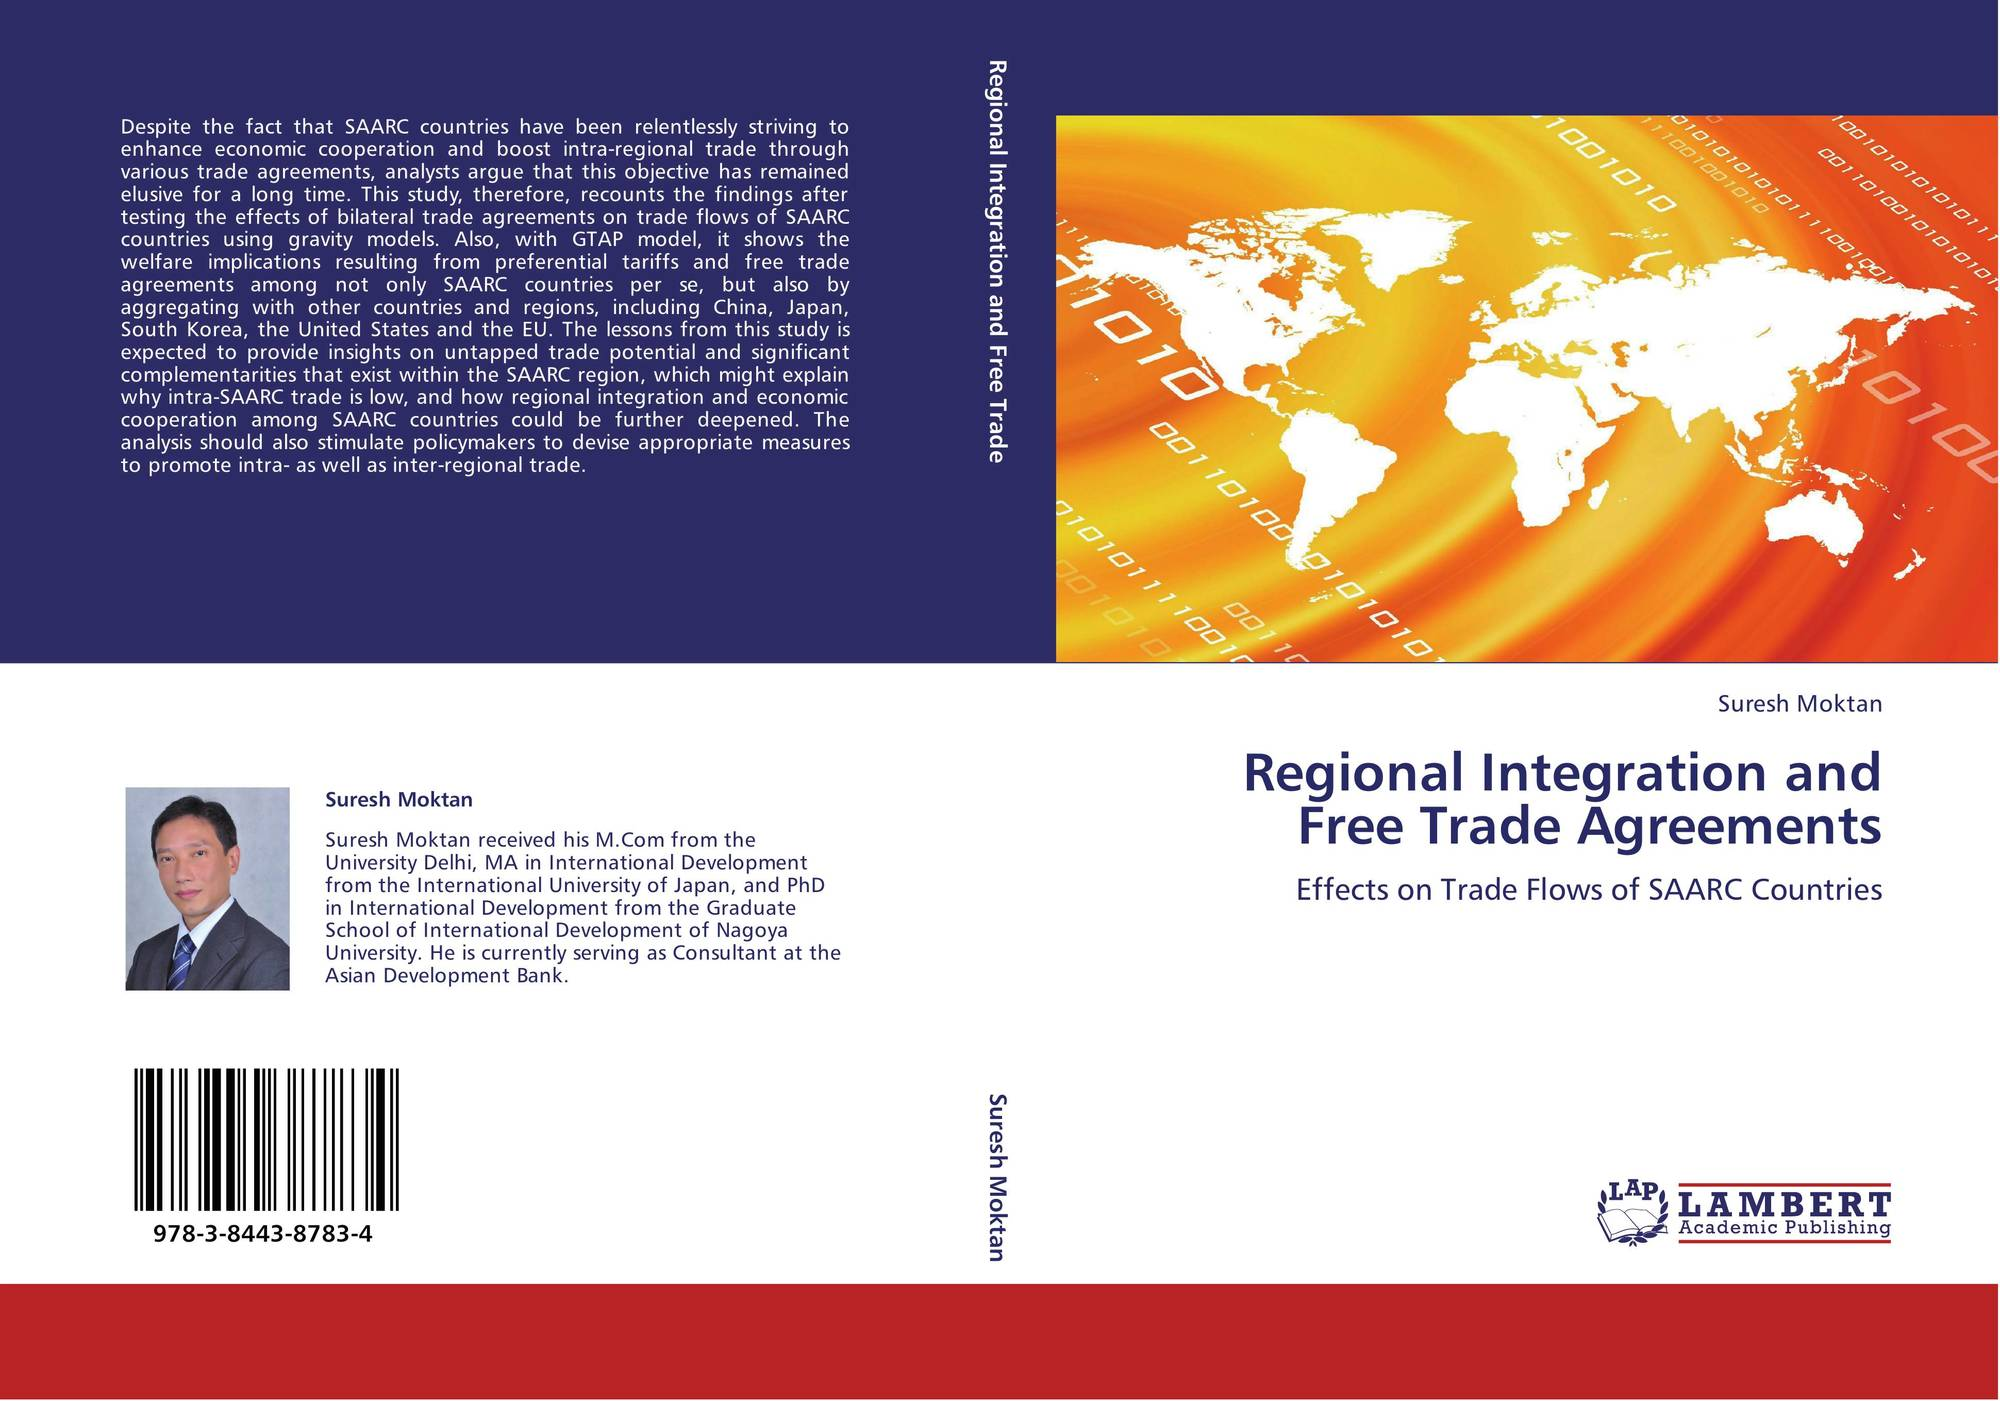 regional trade agreements an analysis [nafta]) other countries' use of regional trade agreements reflects tactical into both an analysis of the effects of any given regional trade agreement, and.